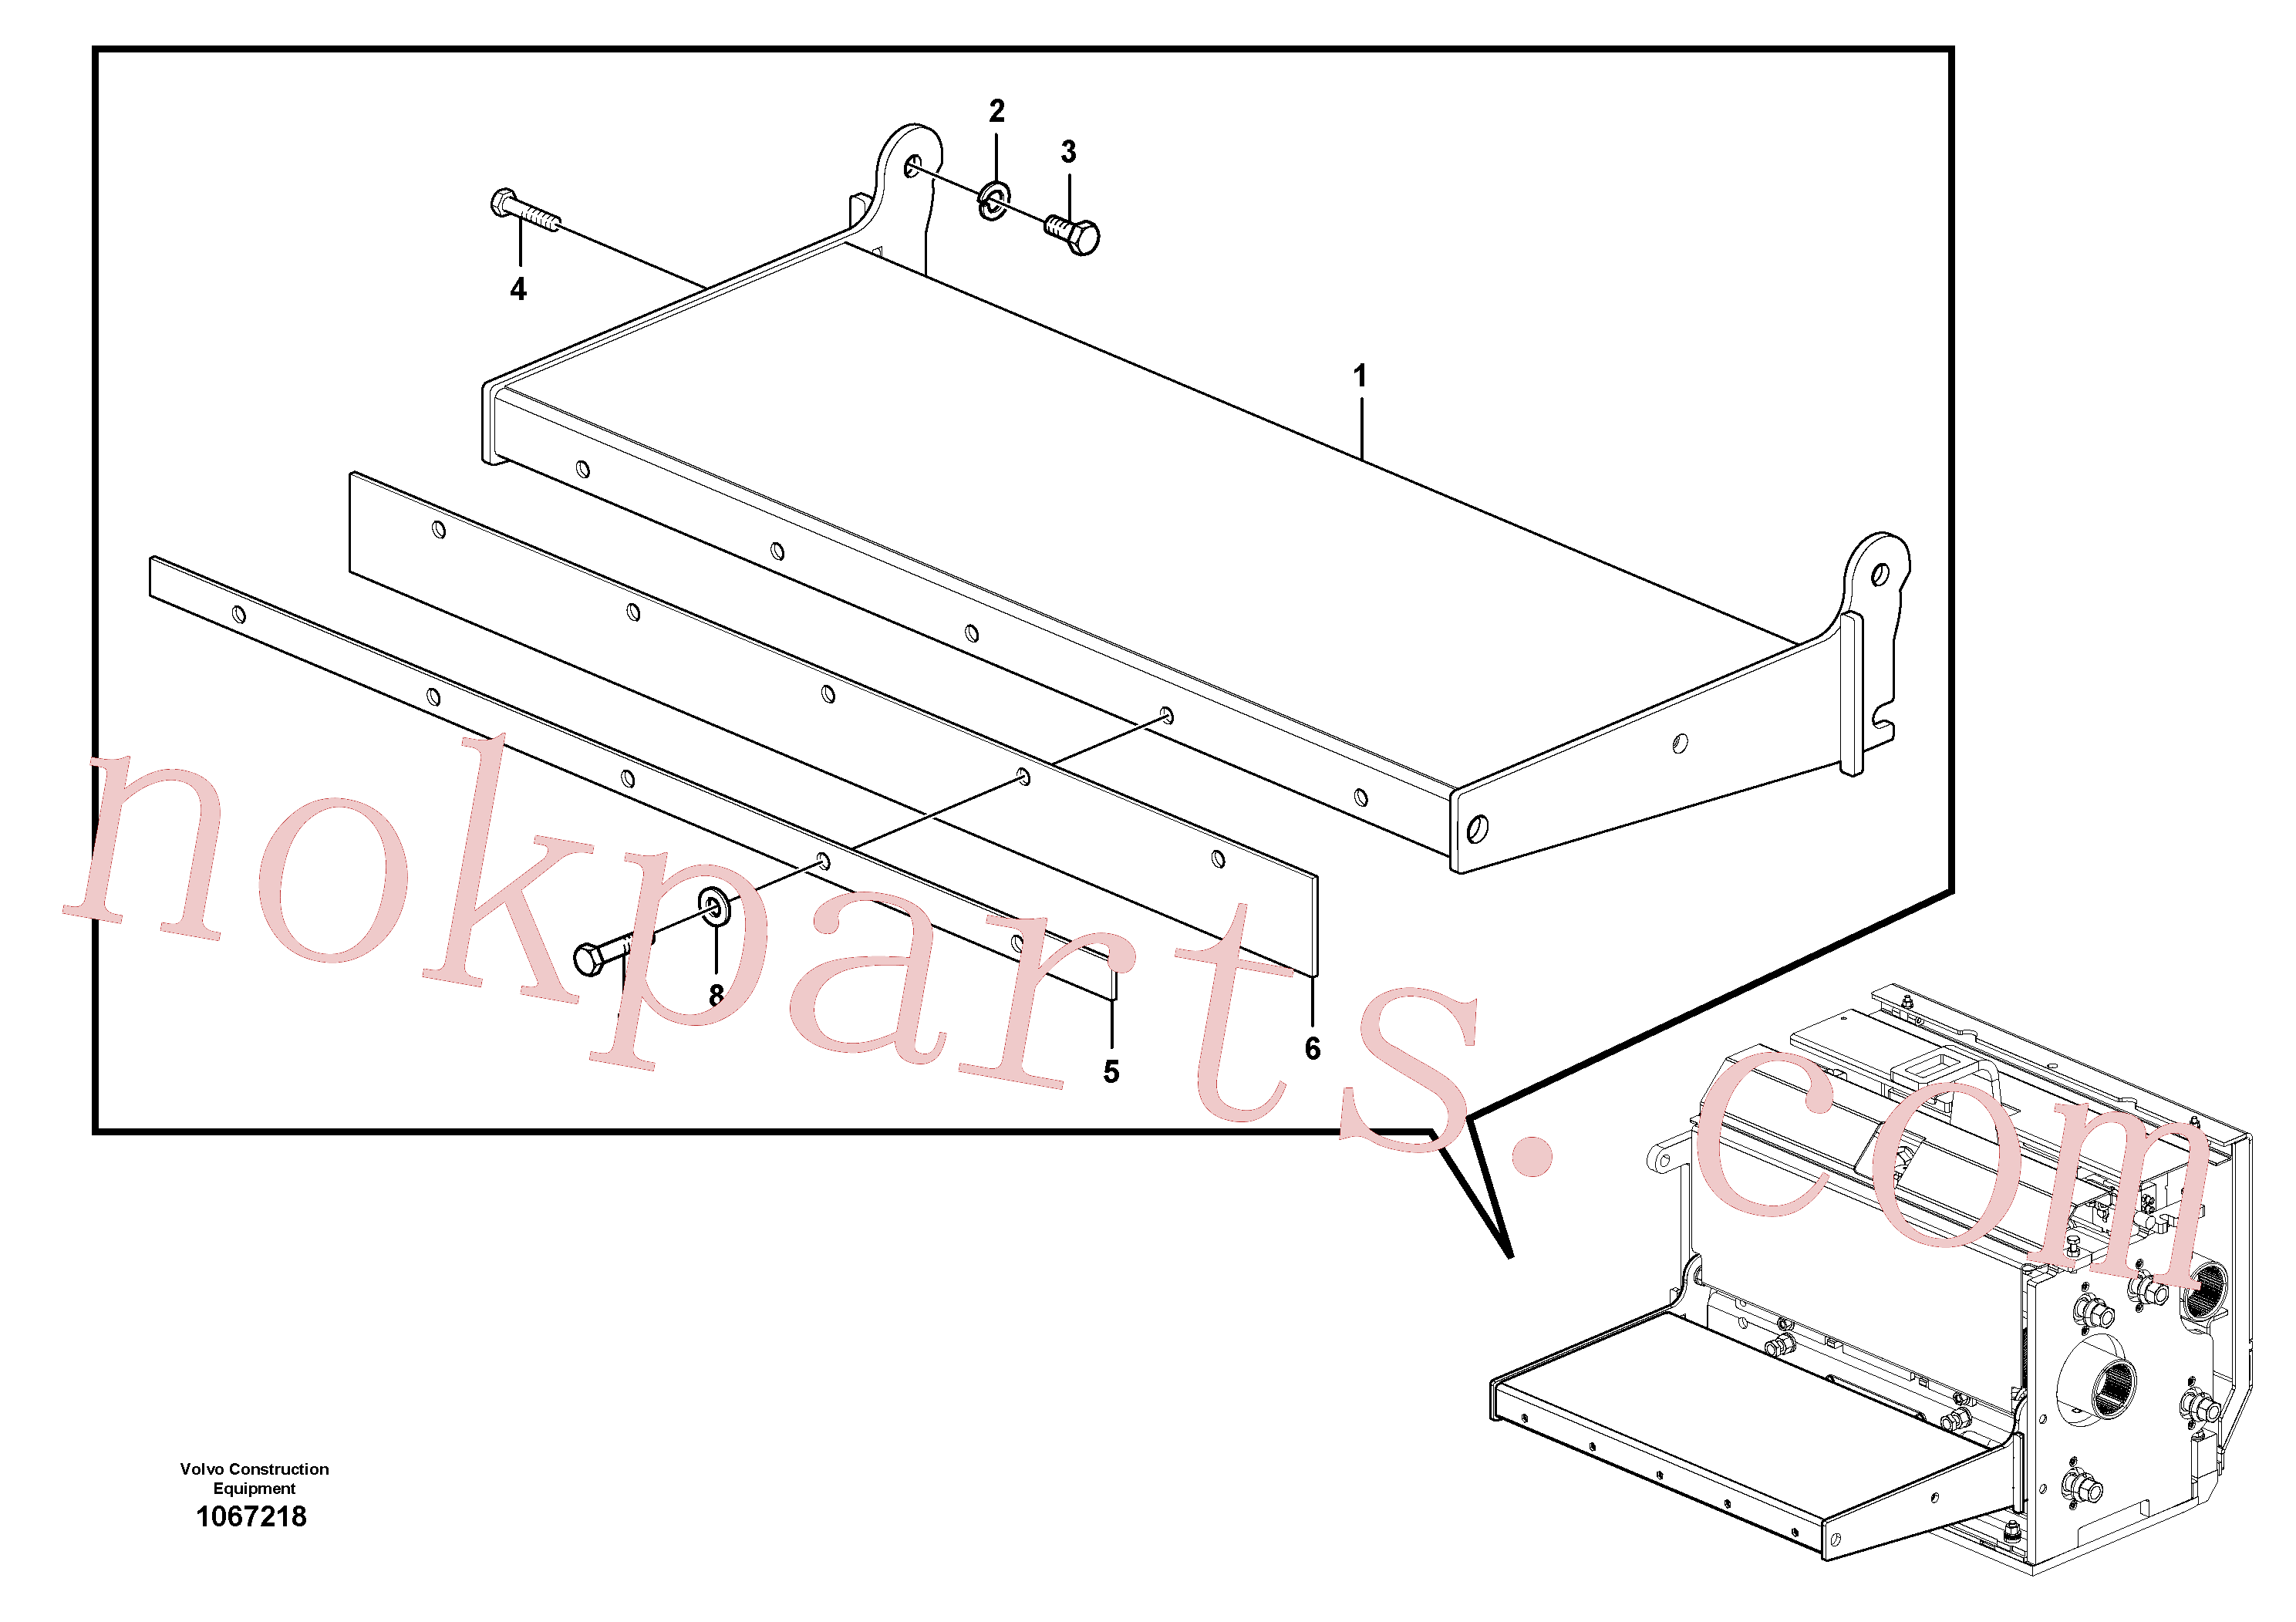 RM96702667 for Volvo Catwalk(1067218 assembly)